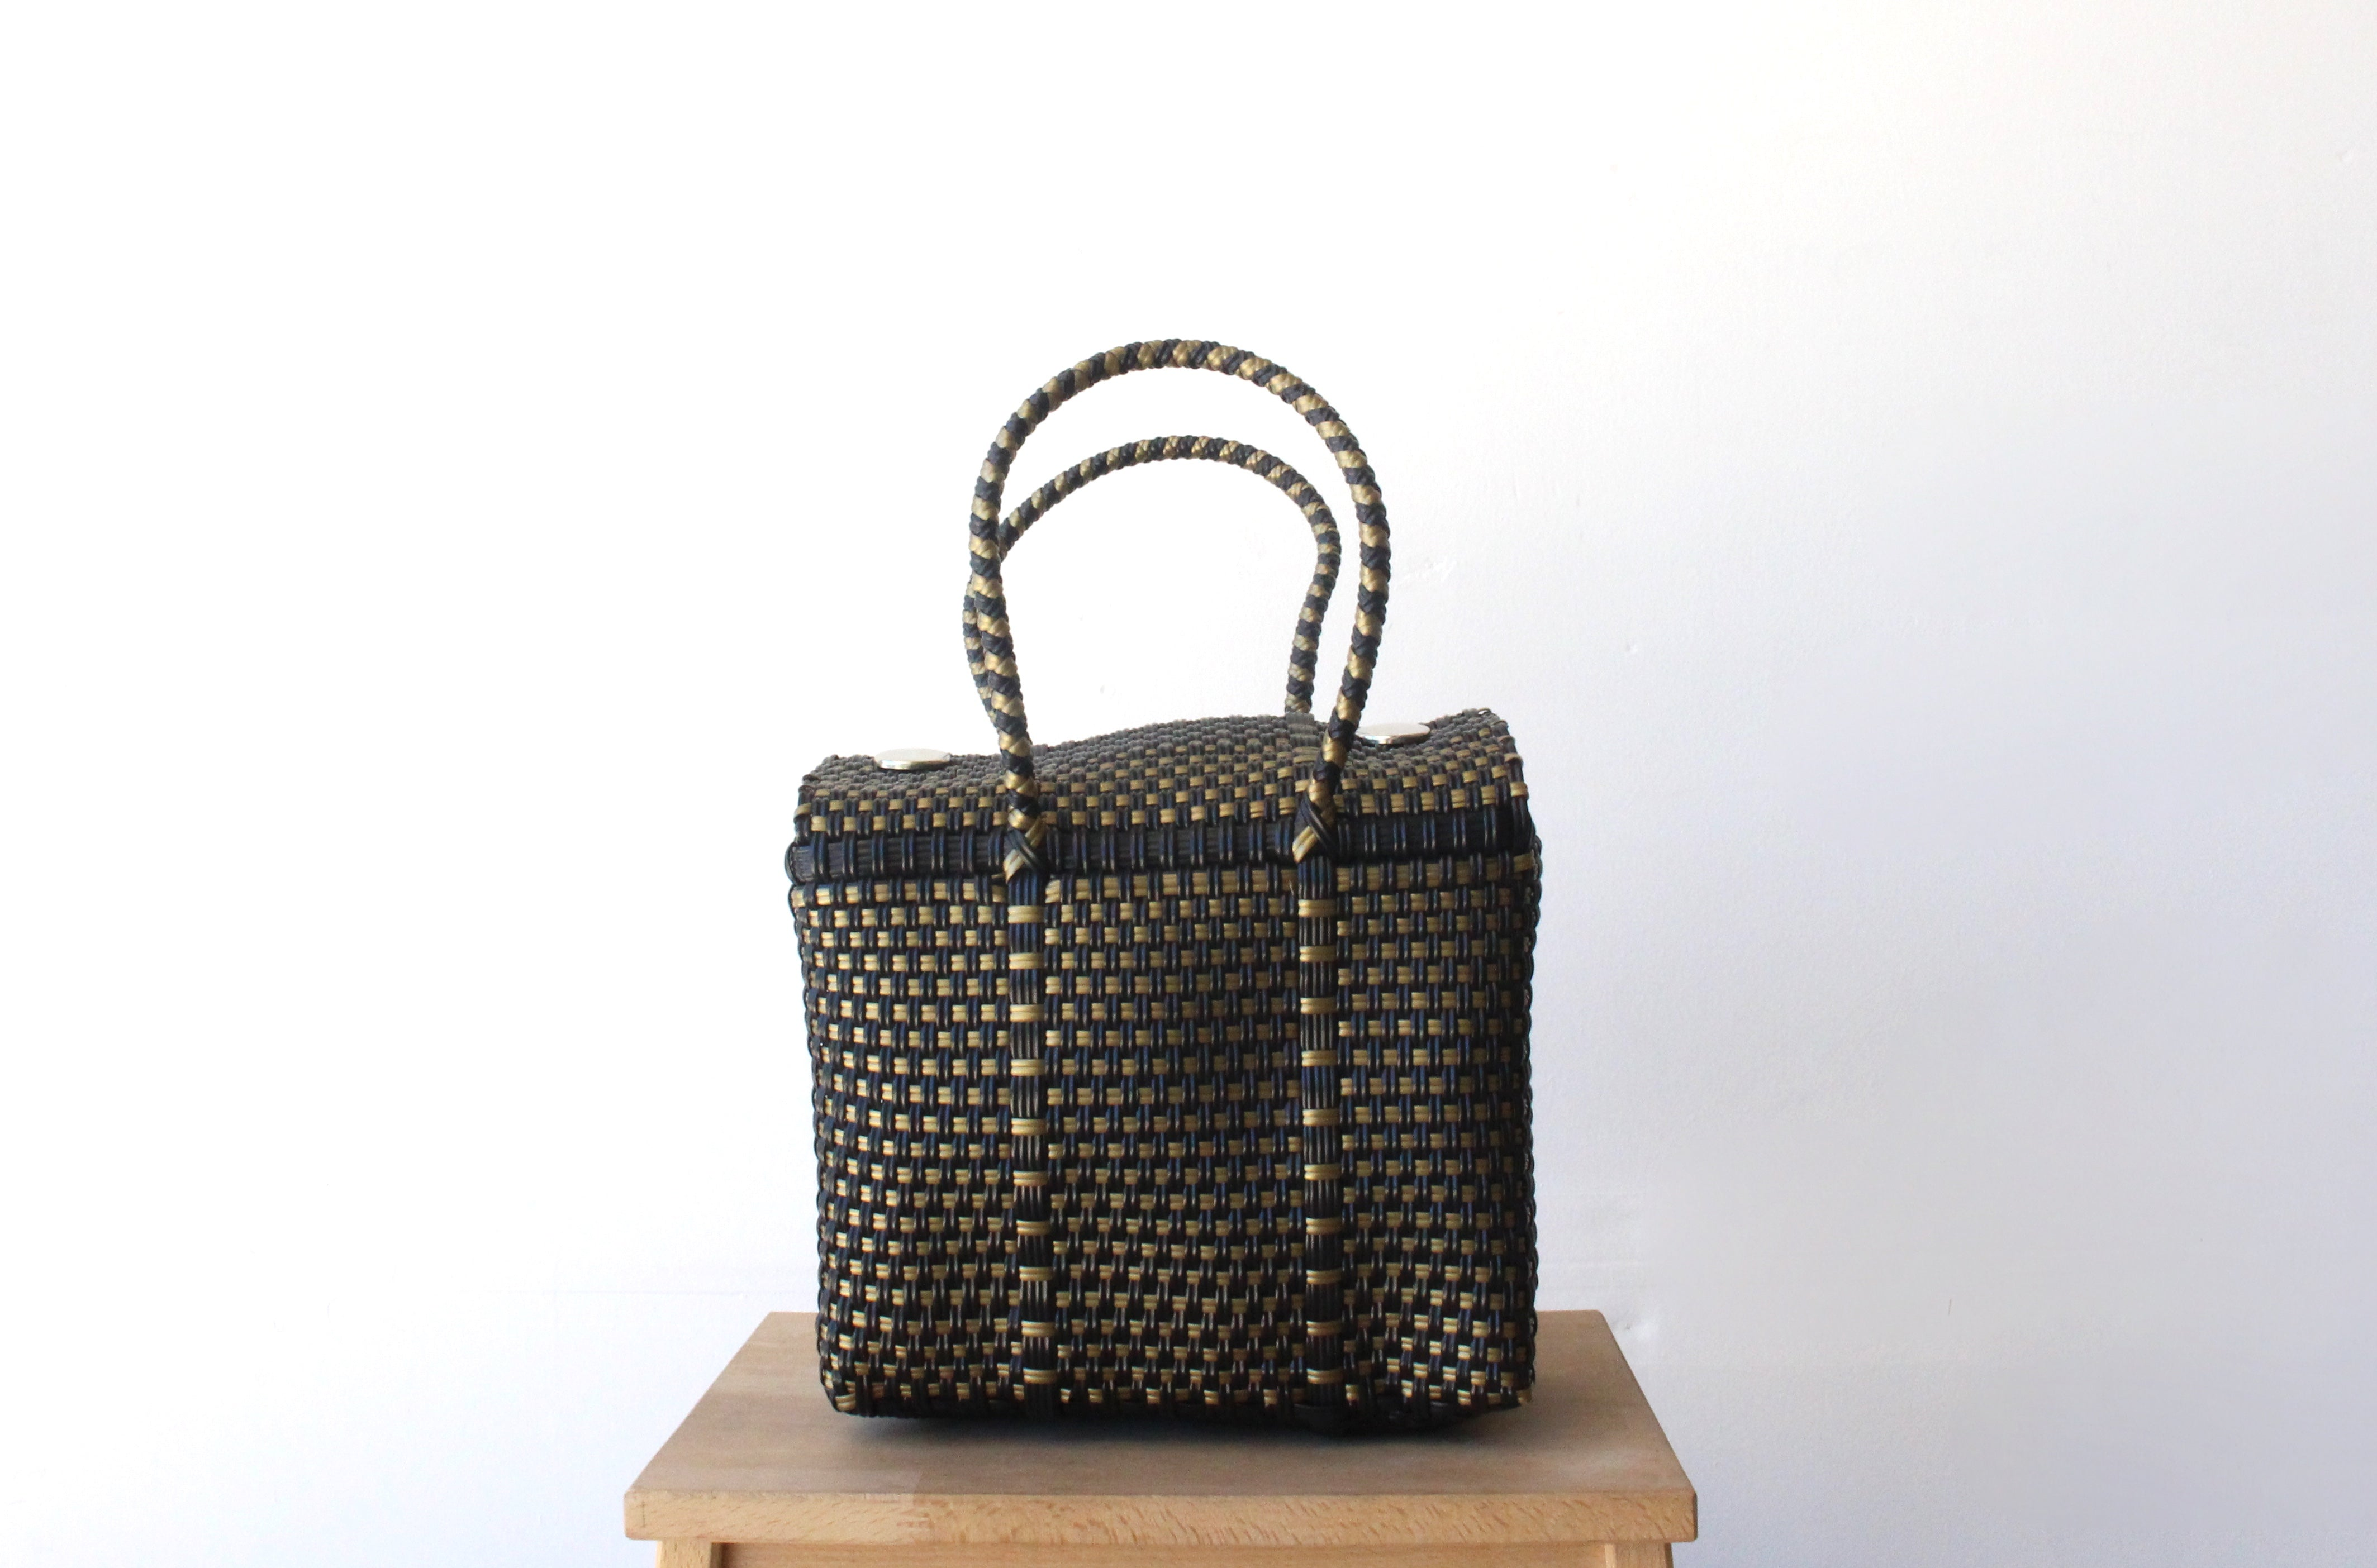 Black & Gold MexiMexi Handbag